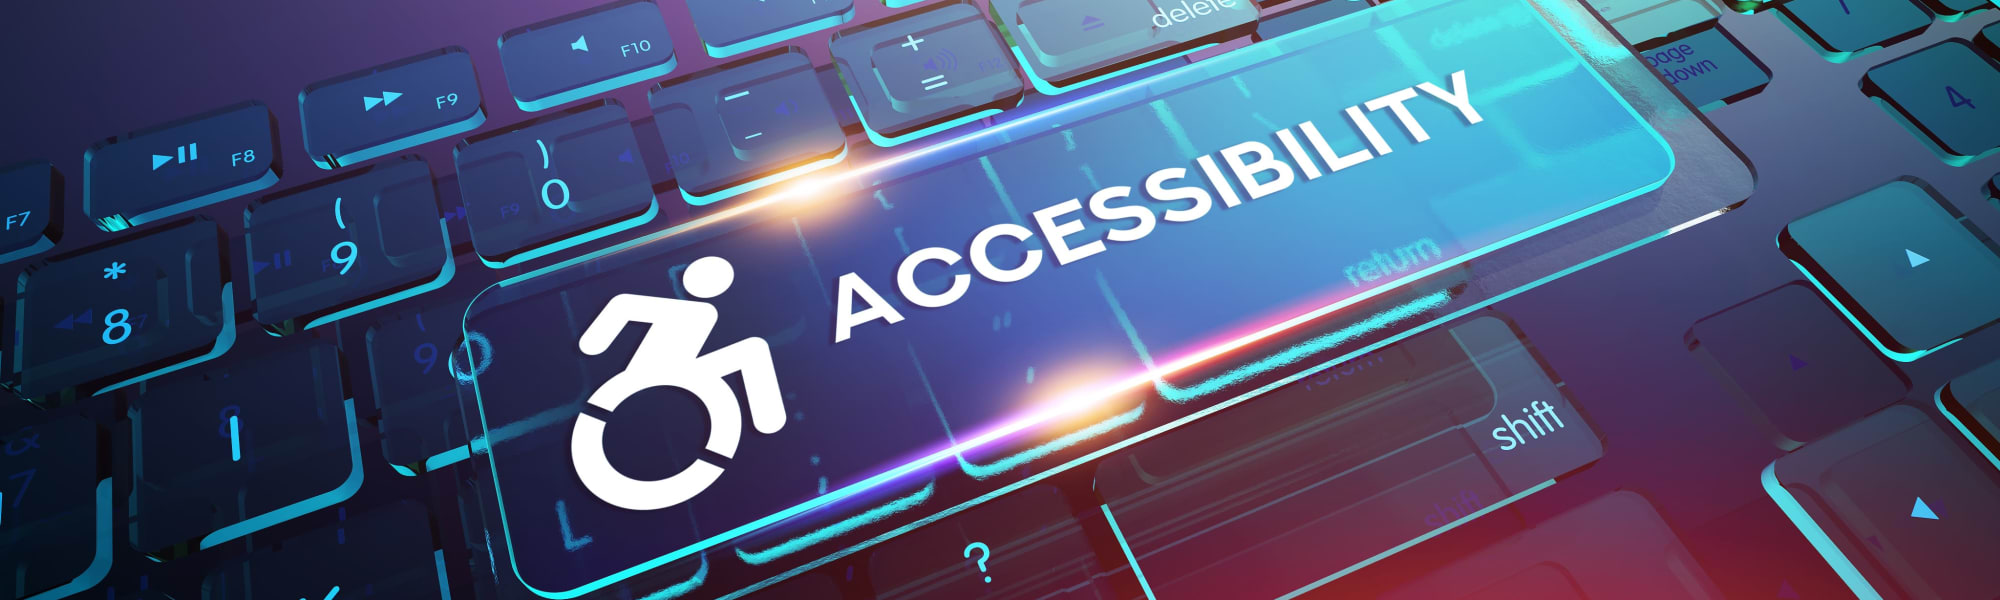 Accessibility policy for Olympus Midtown in Nashville, Tennessee